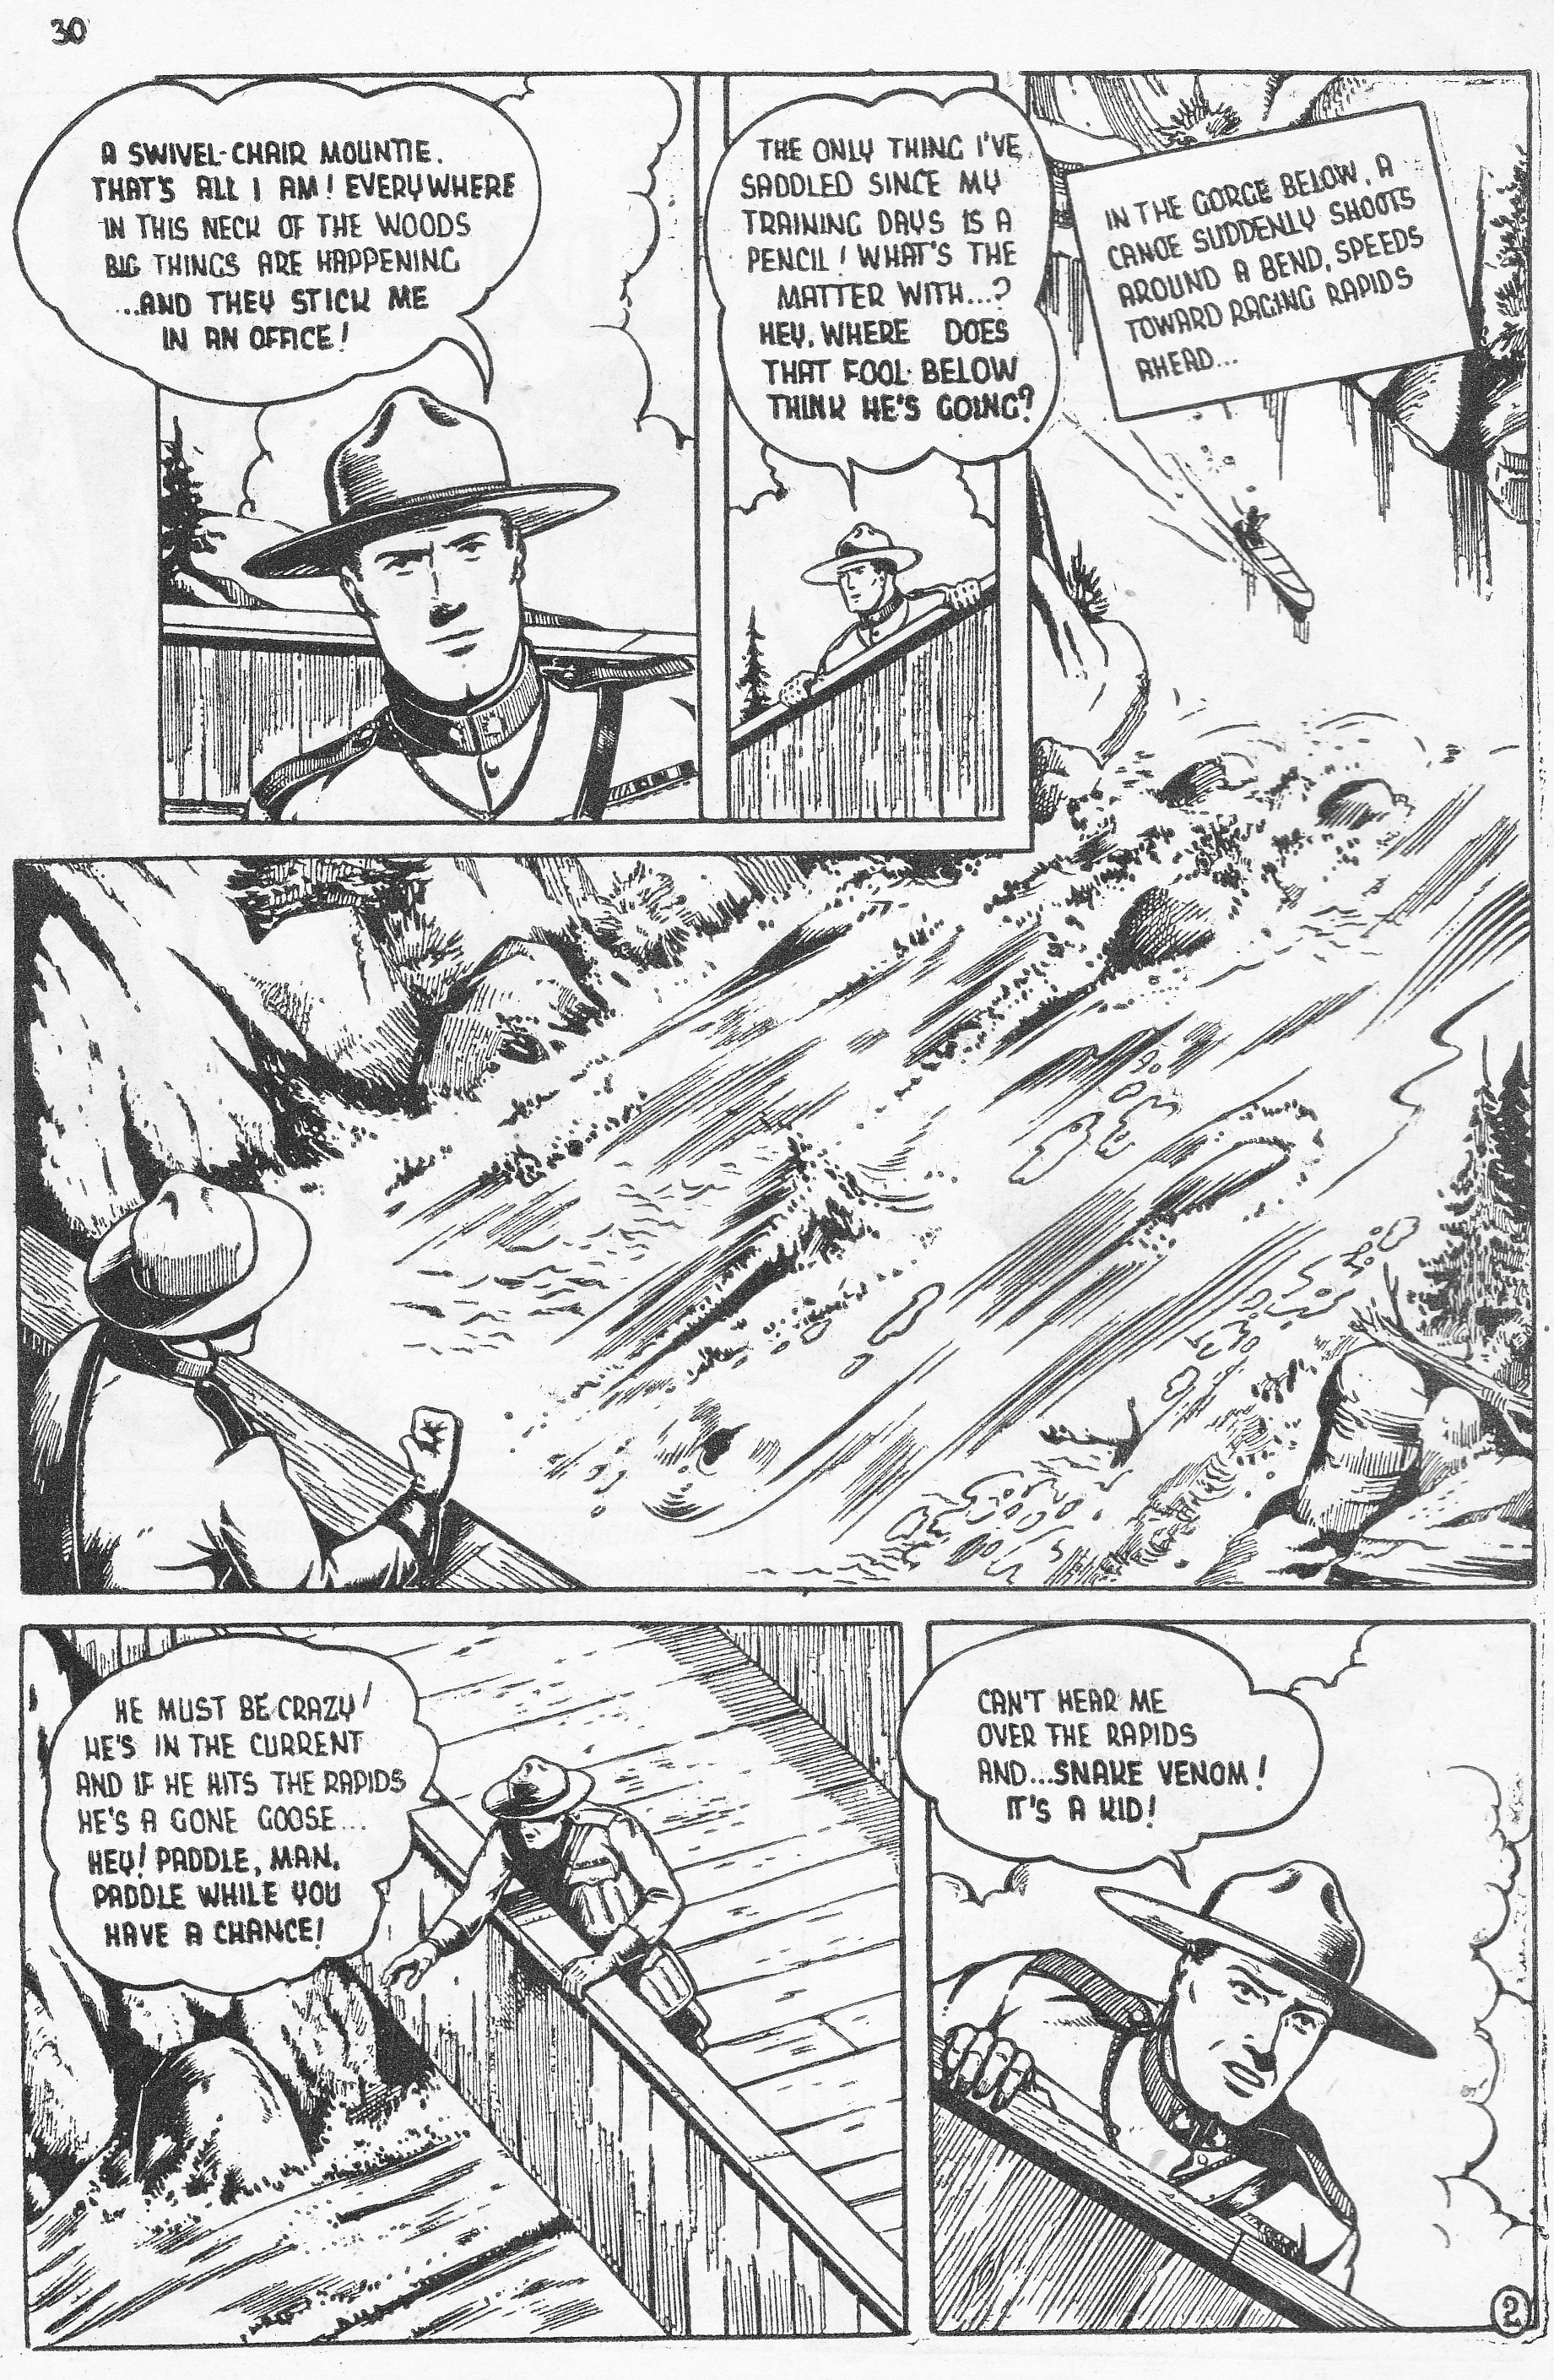 C:\Users\Robert\Documents\CARTOONING ILLUSTRATION ANIMATION\IMAGE CARTOON\IMAGE CARTOON M\MEN OF THE MOUNTED, Robin Hood Comics, 2-12, J-F 1945, 30.jpg